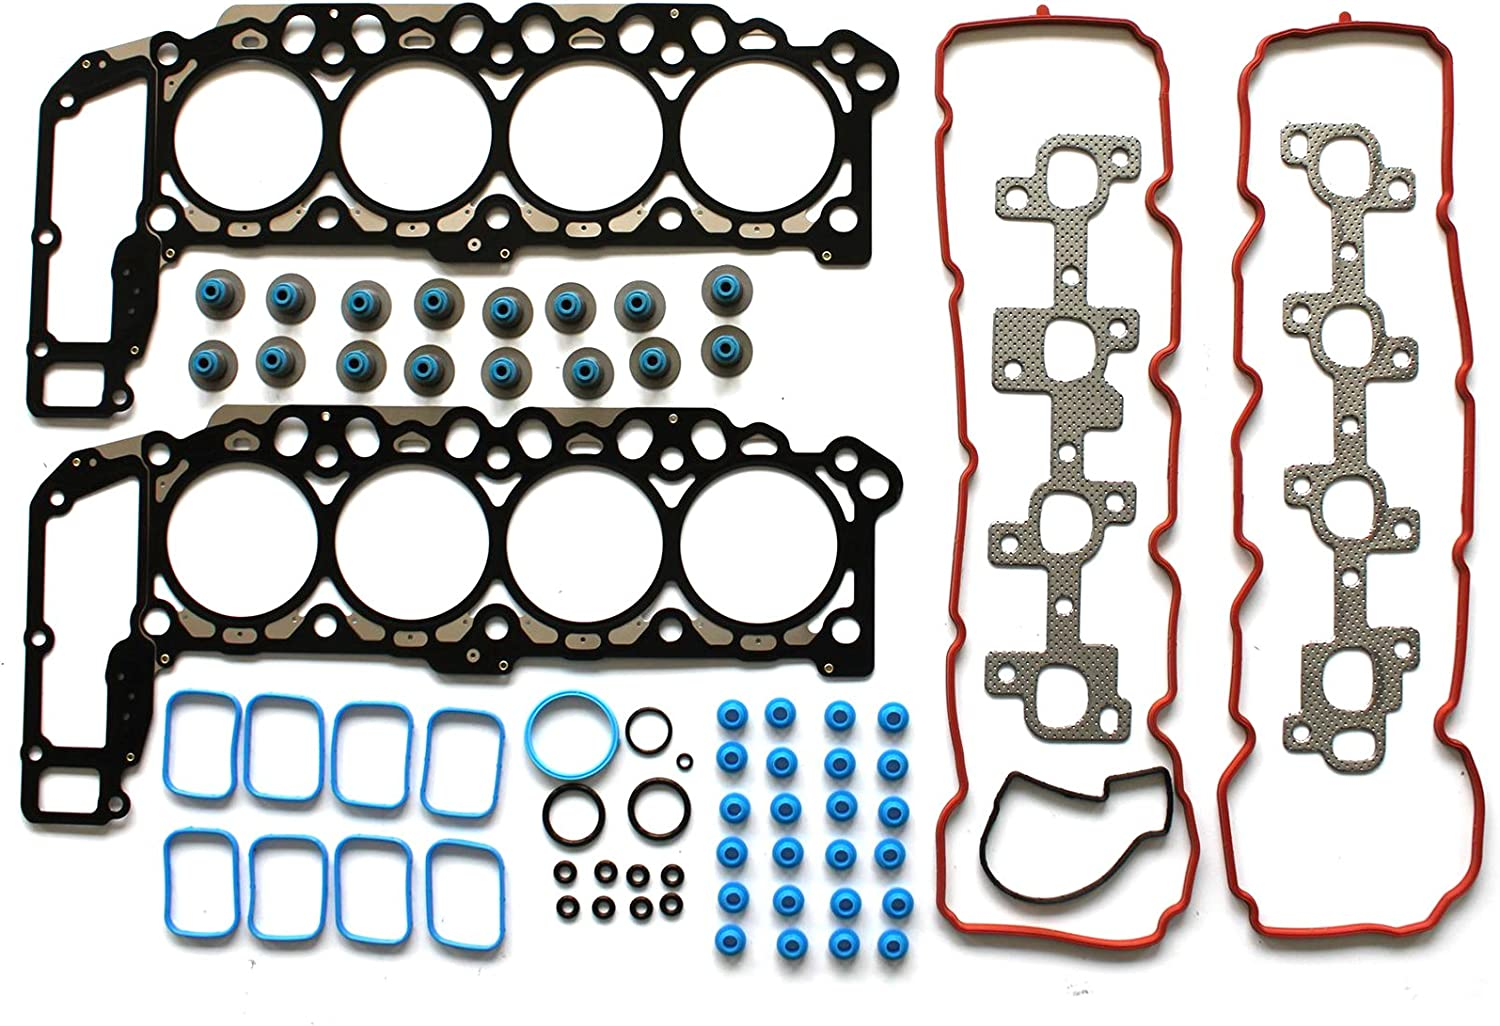 ECCPP Engine Replacement Head Max 52% OFF Gasket Set for 04-07 35% OFF Chrysler